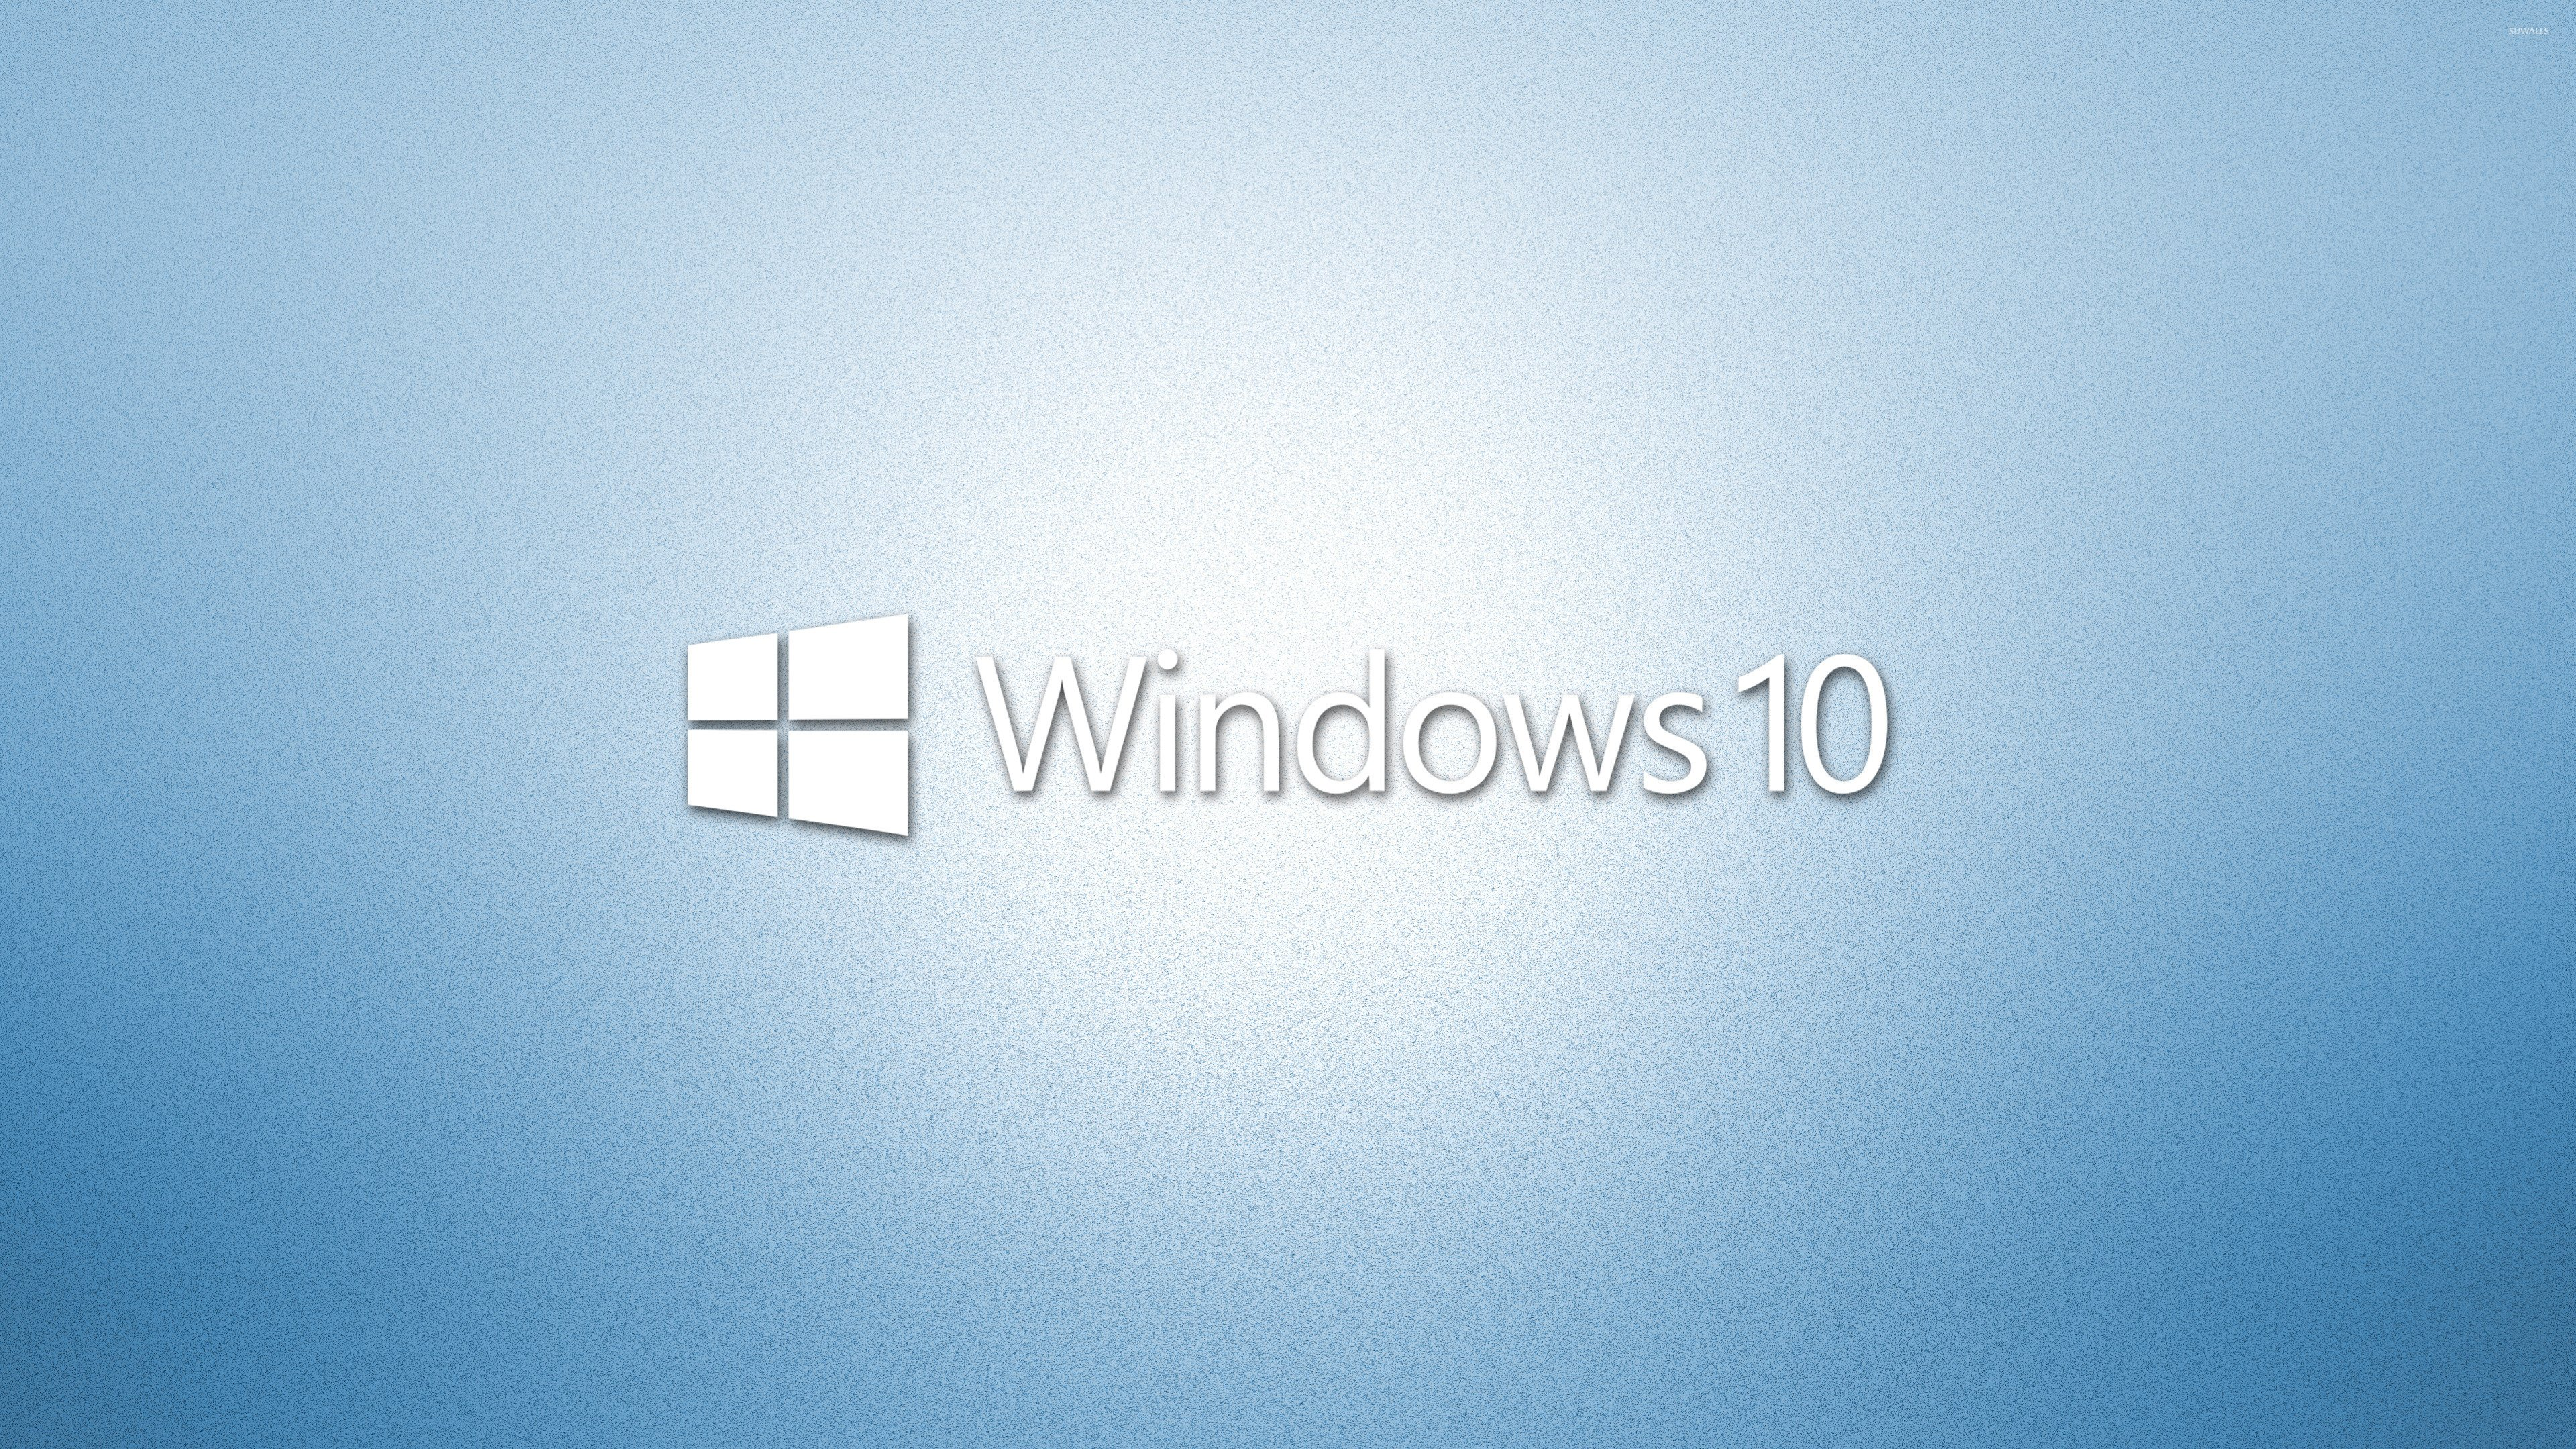 Free Download Windows 10 White Text Logo On Light Blue Wallpaper